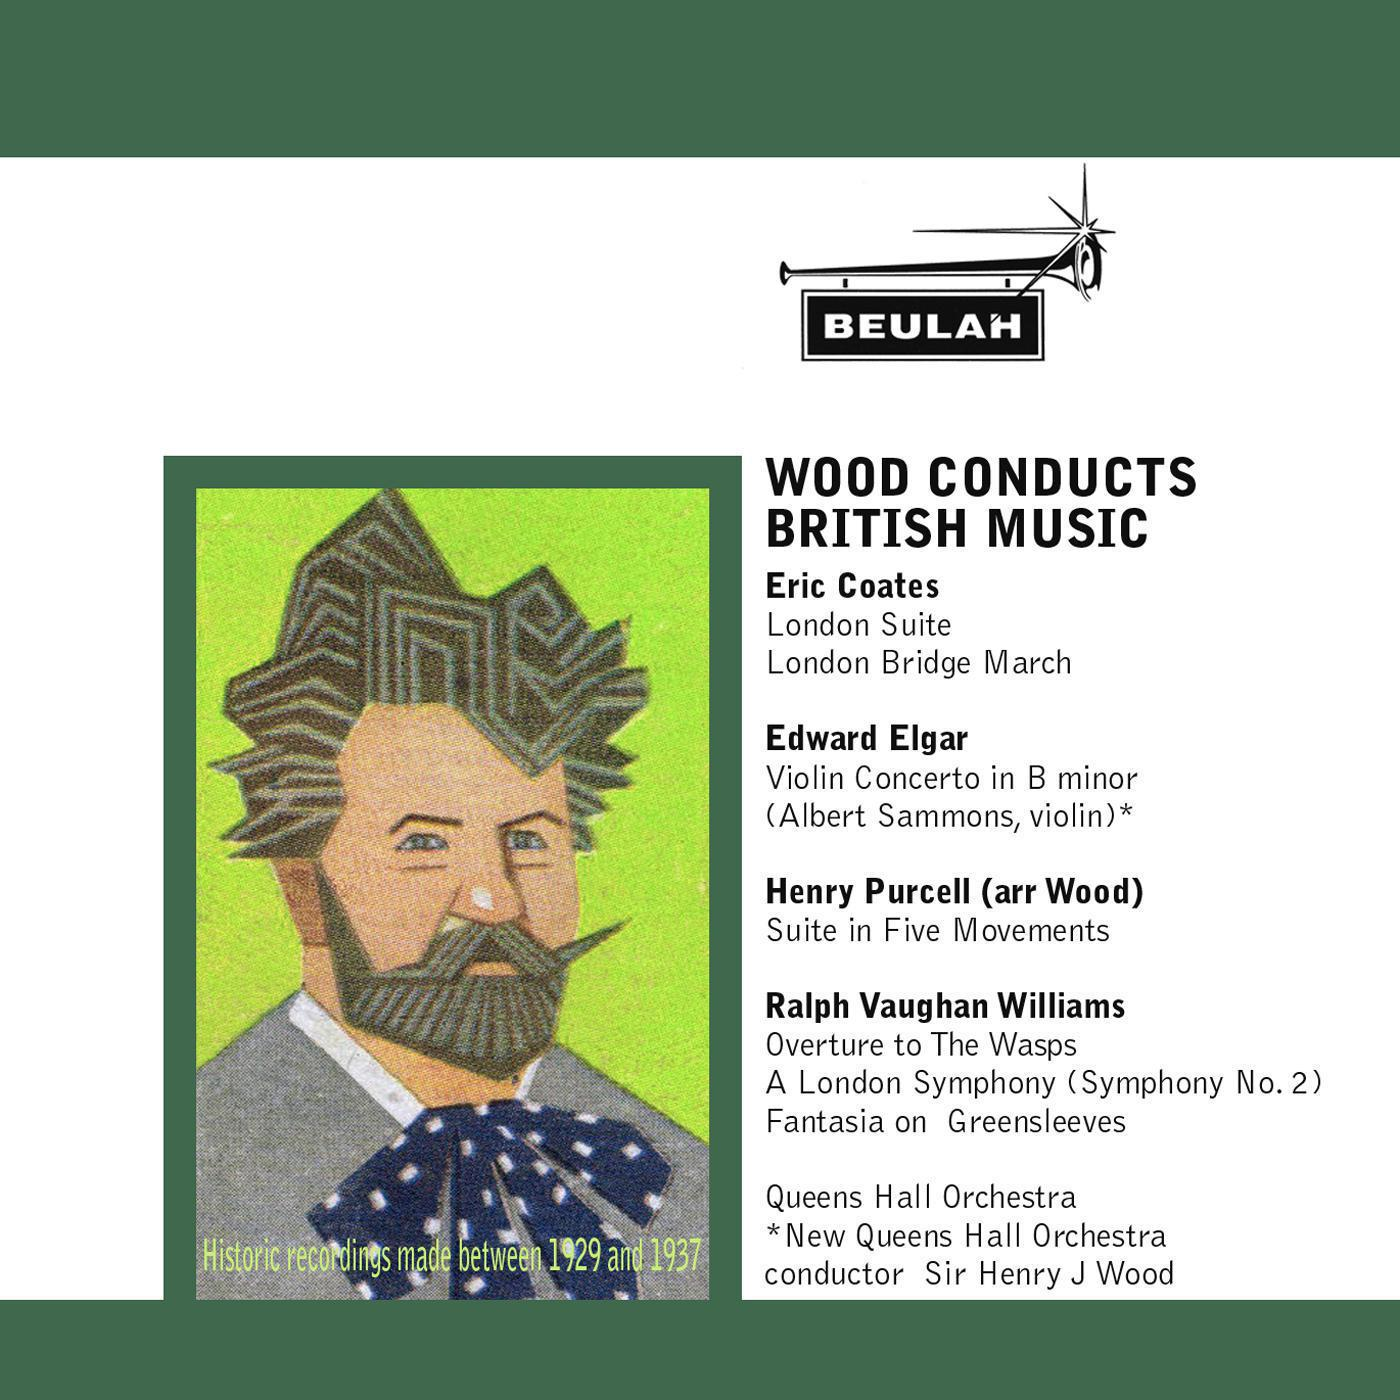 Wood conducts British Music